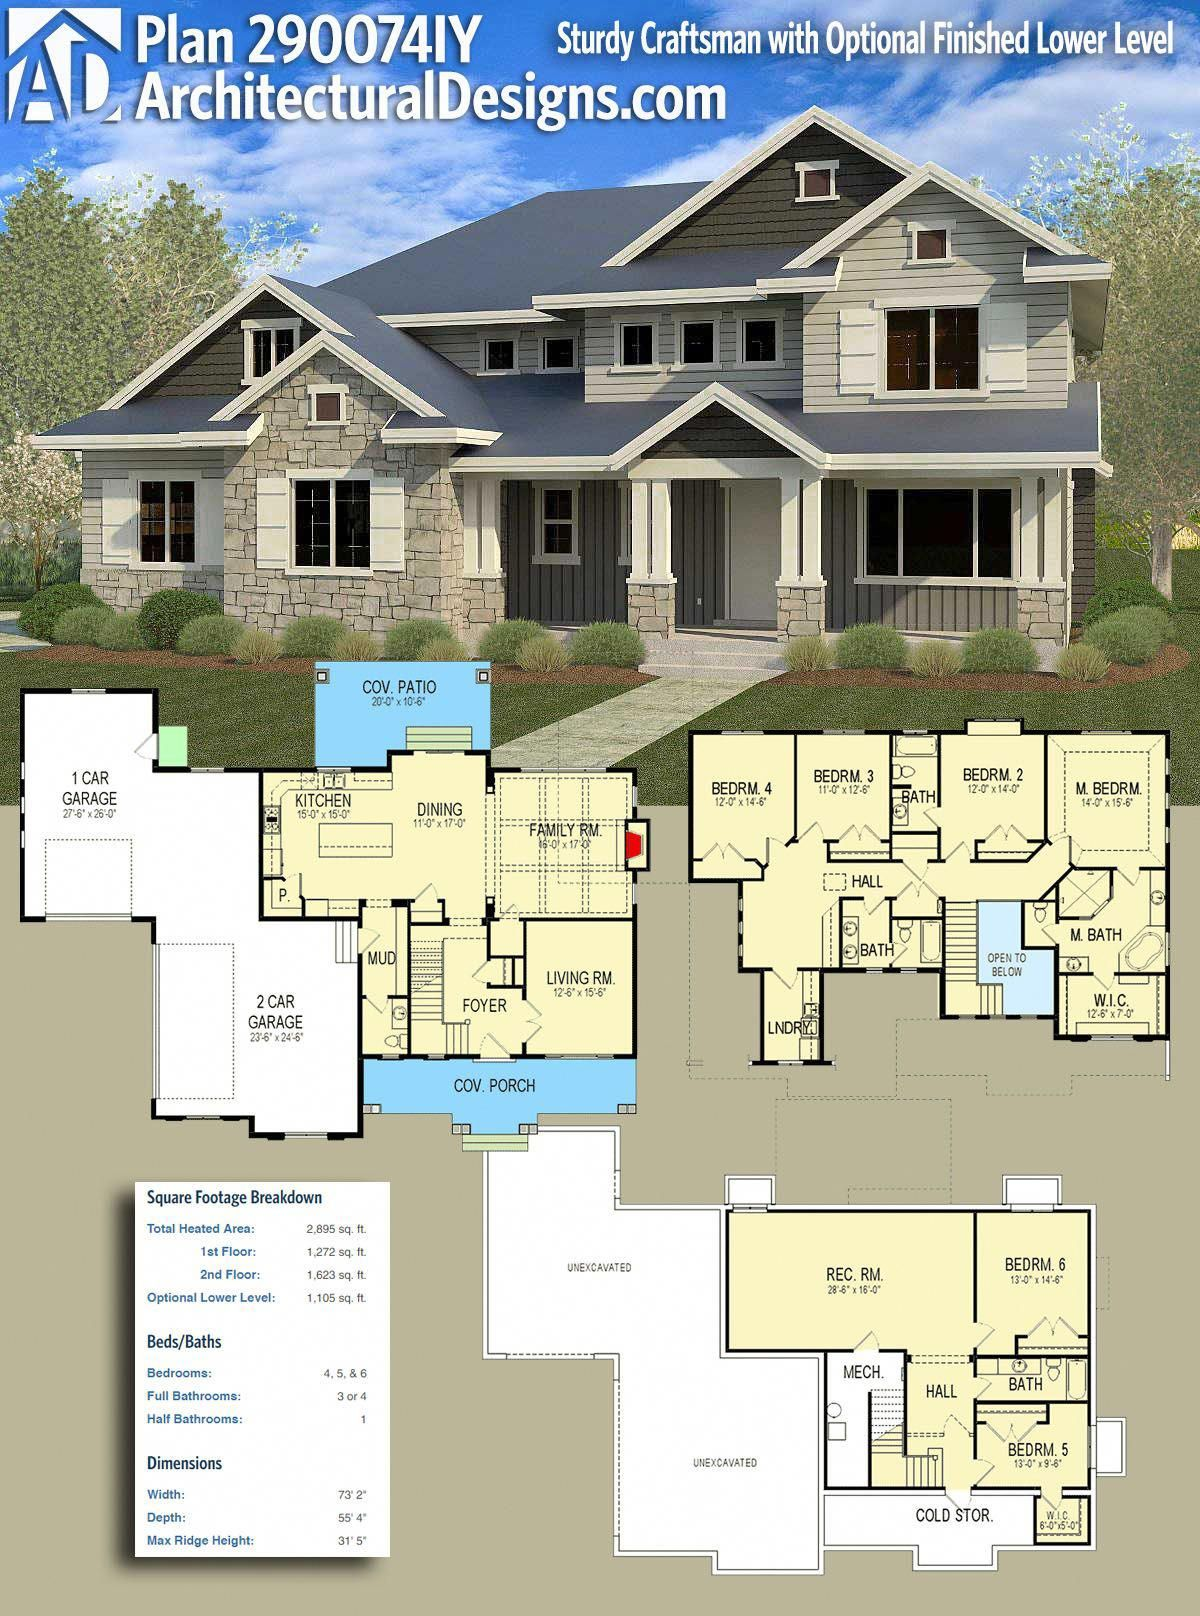 Furniture Arrangement In Residential Spaces Howtoarrangelivingroomfurniture Craftsman House Plans Craftsman House Craftsman House Plan